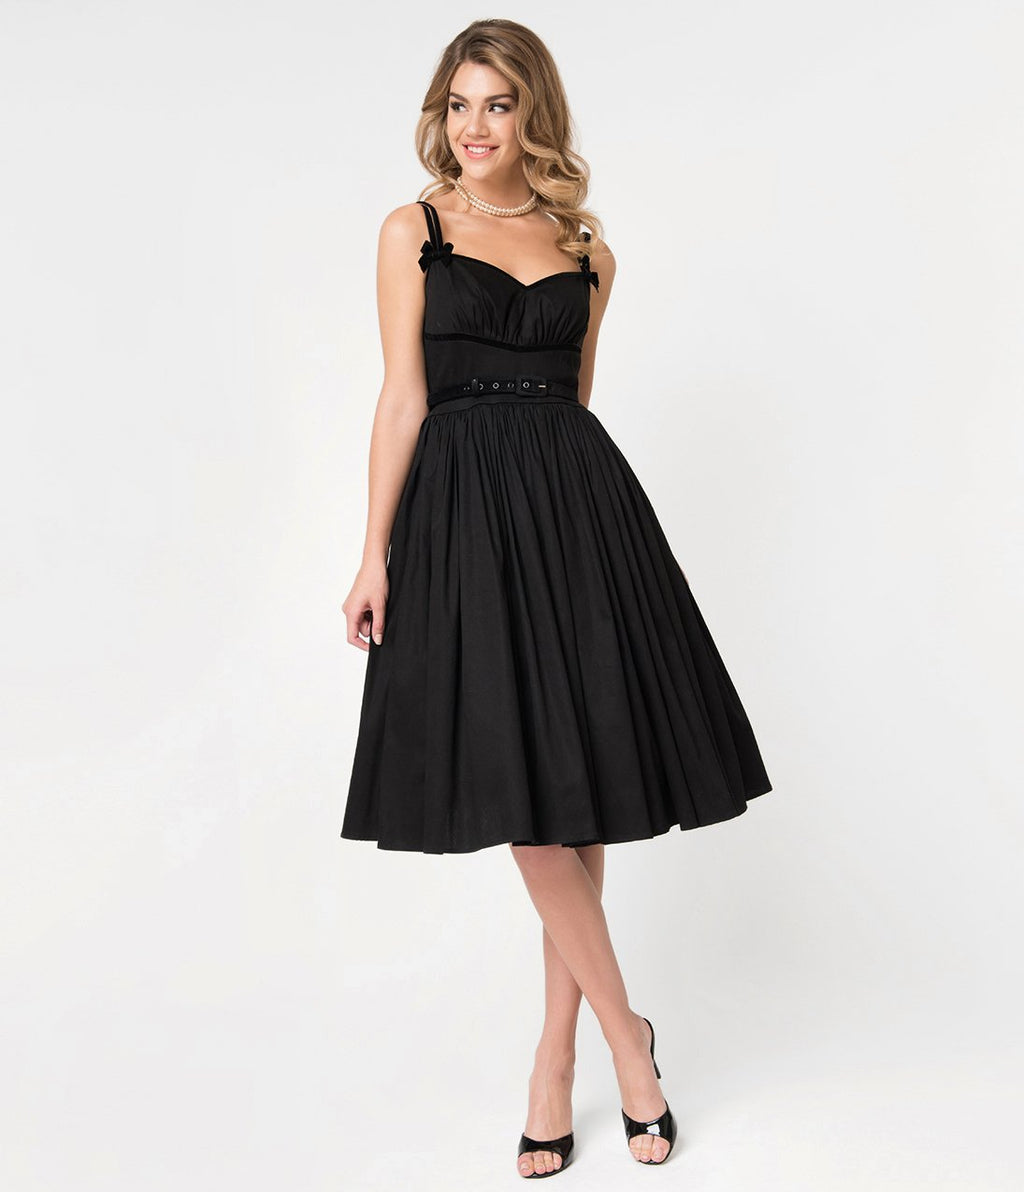 Micheline Pitt For Unique Vintage Black Cotton Alice Swing Dress